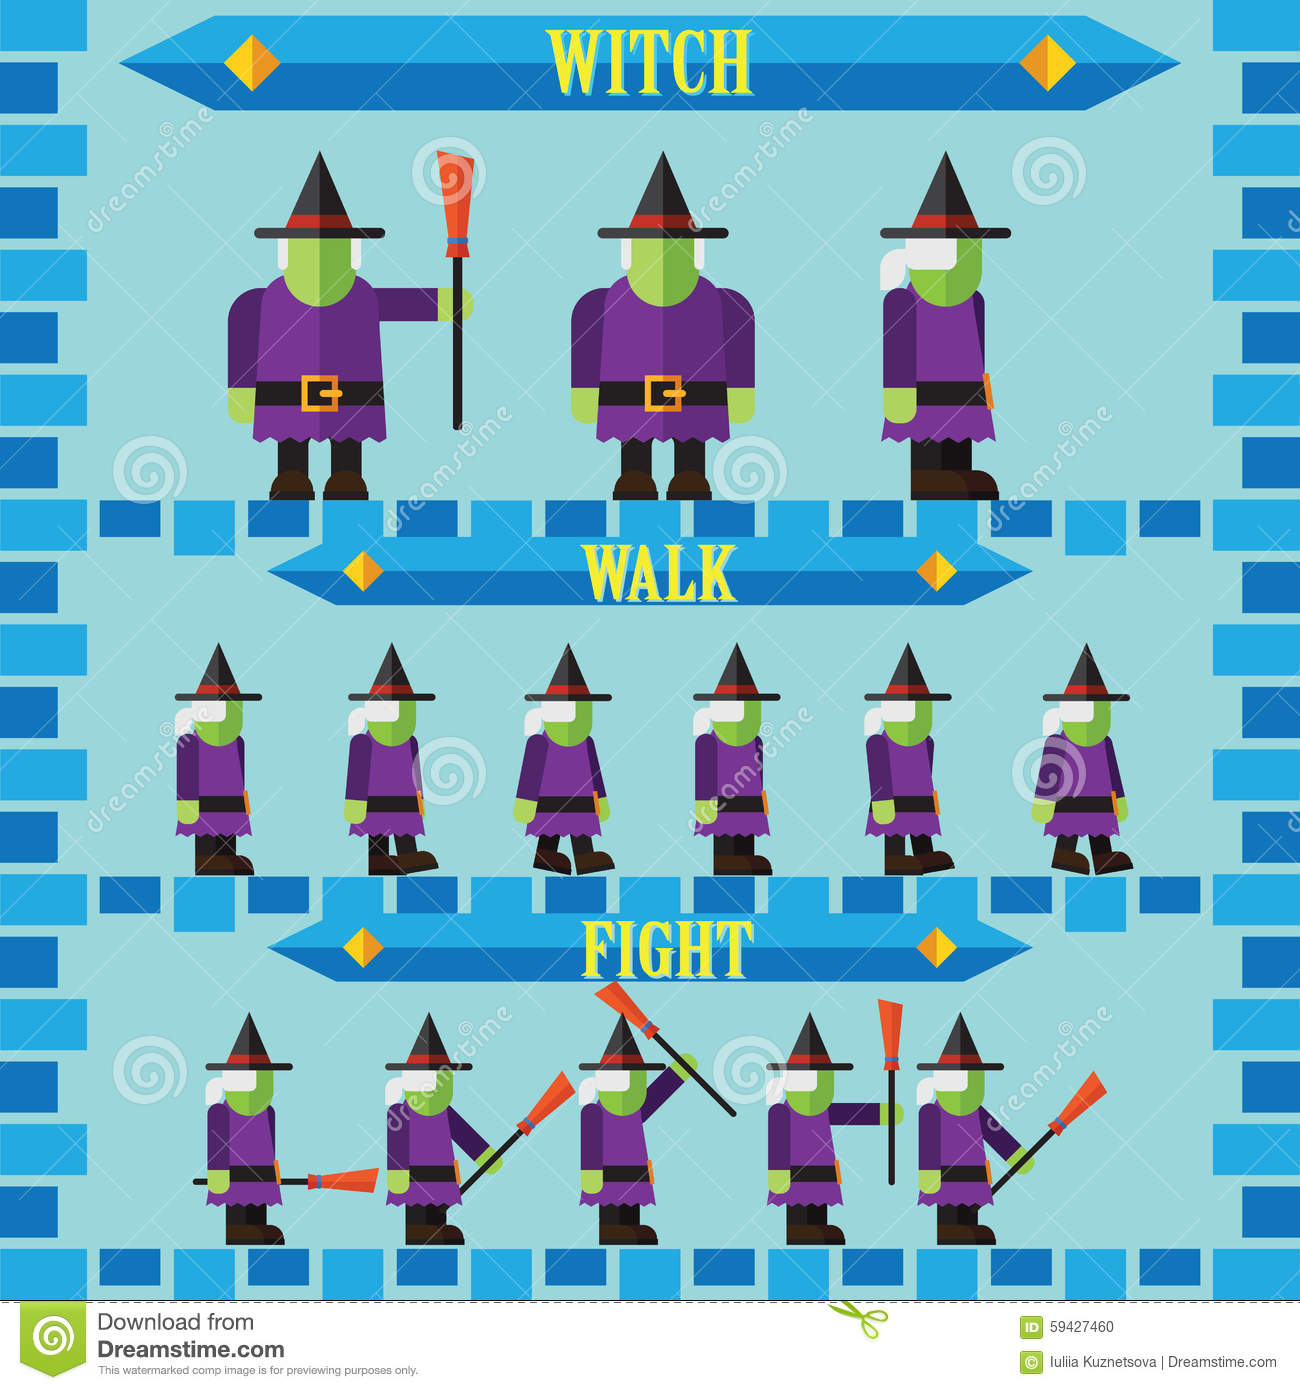 Flat Design Character Download : Flat halloween game character for design witch stock